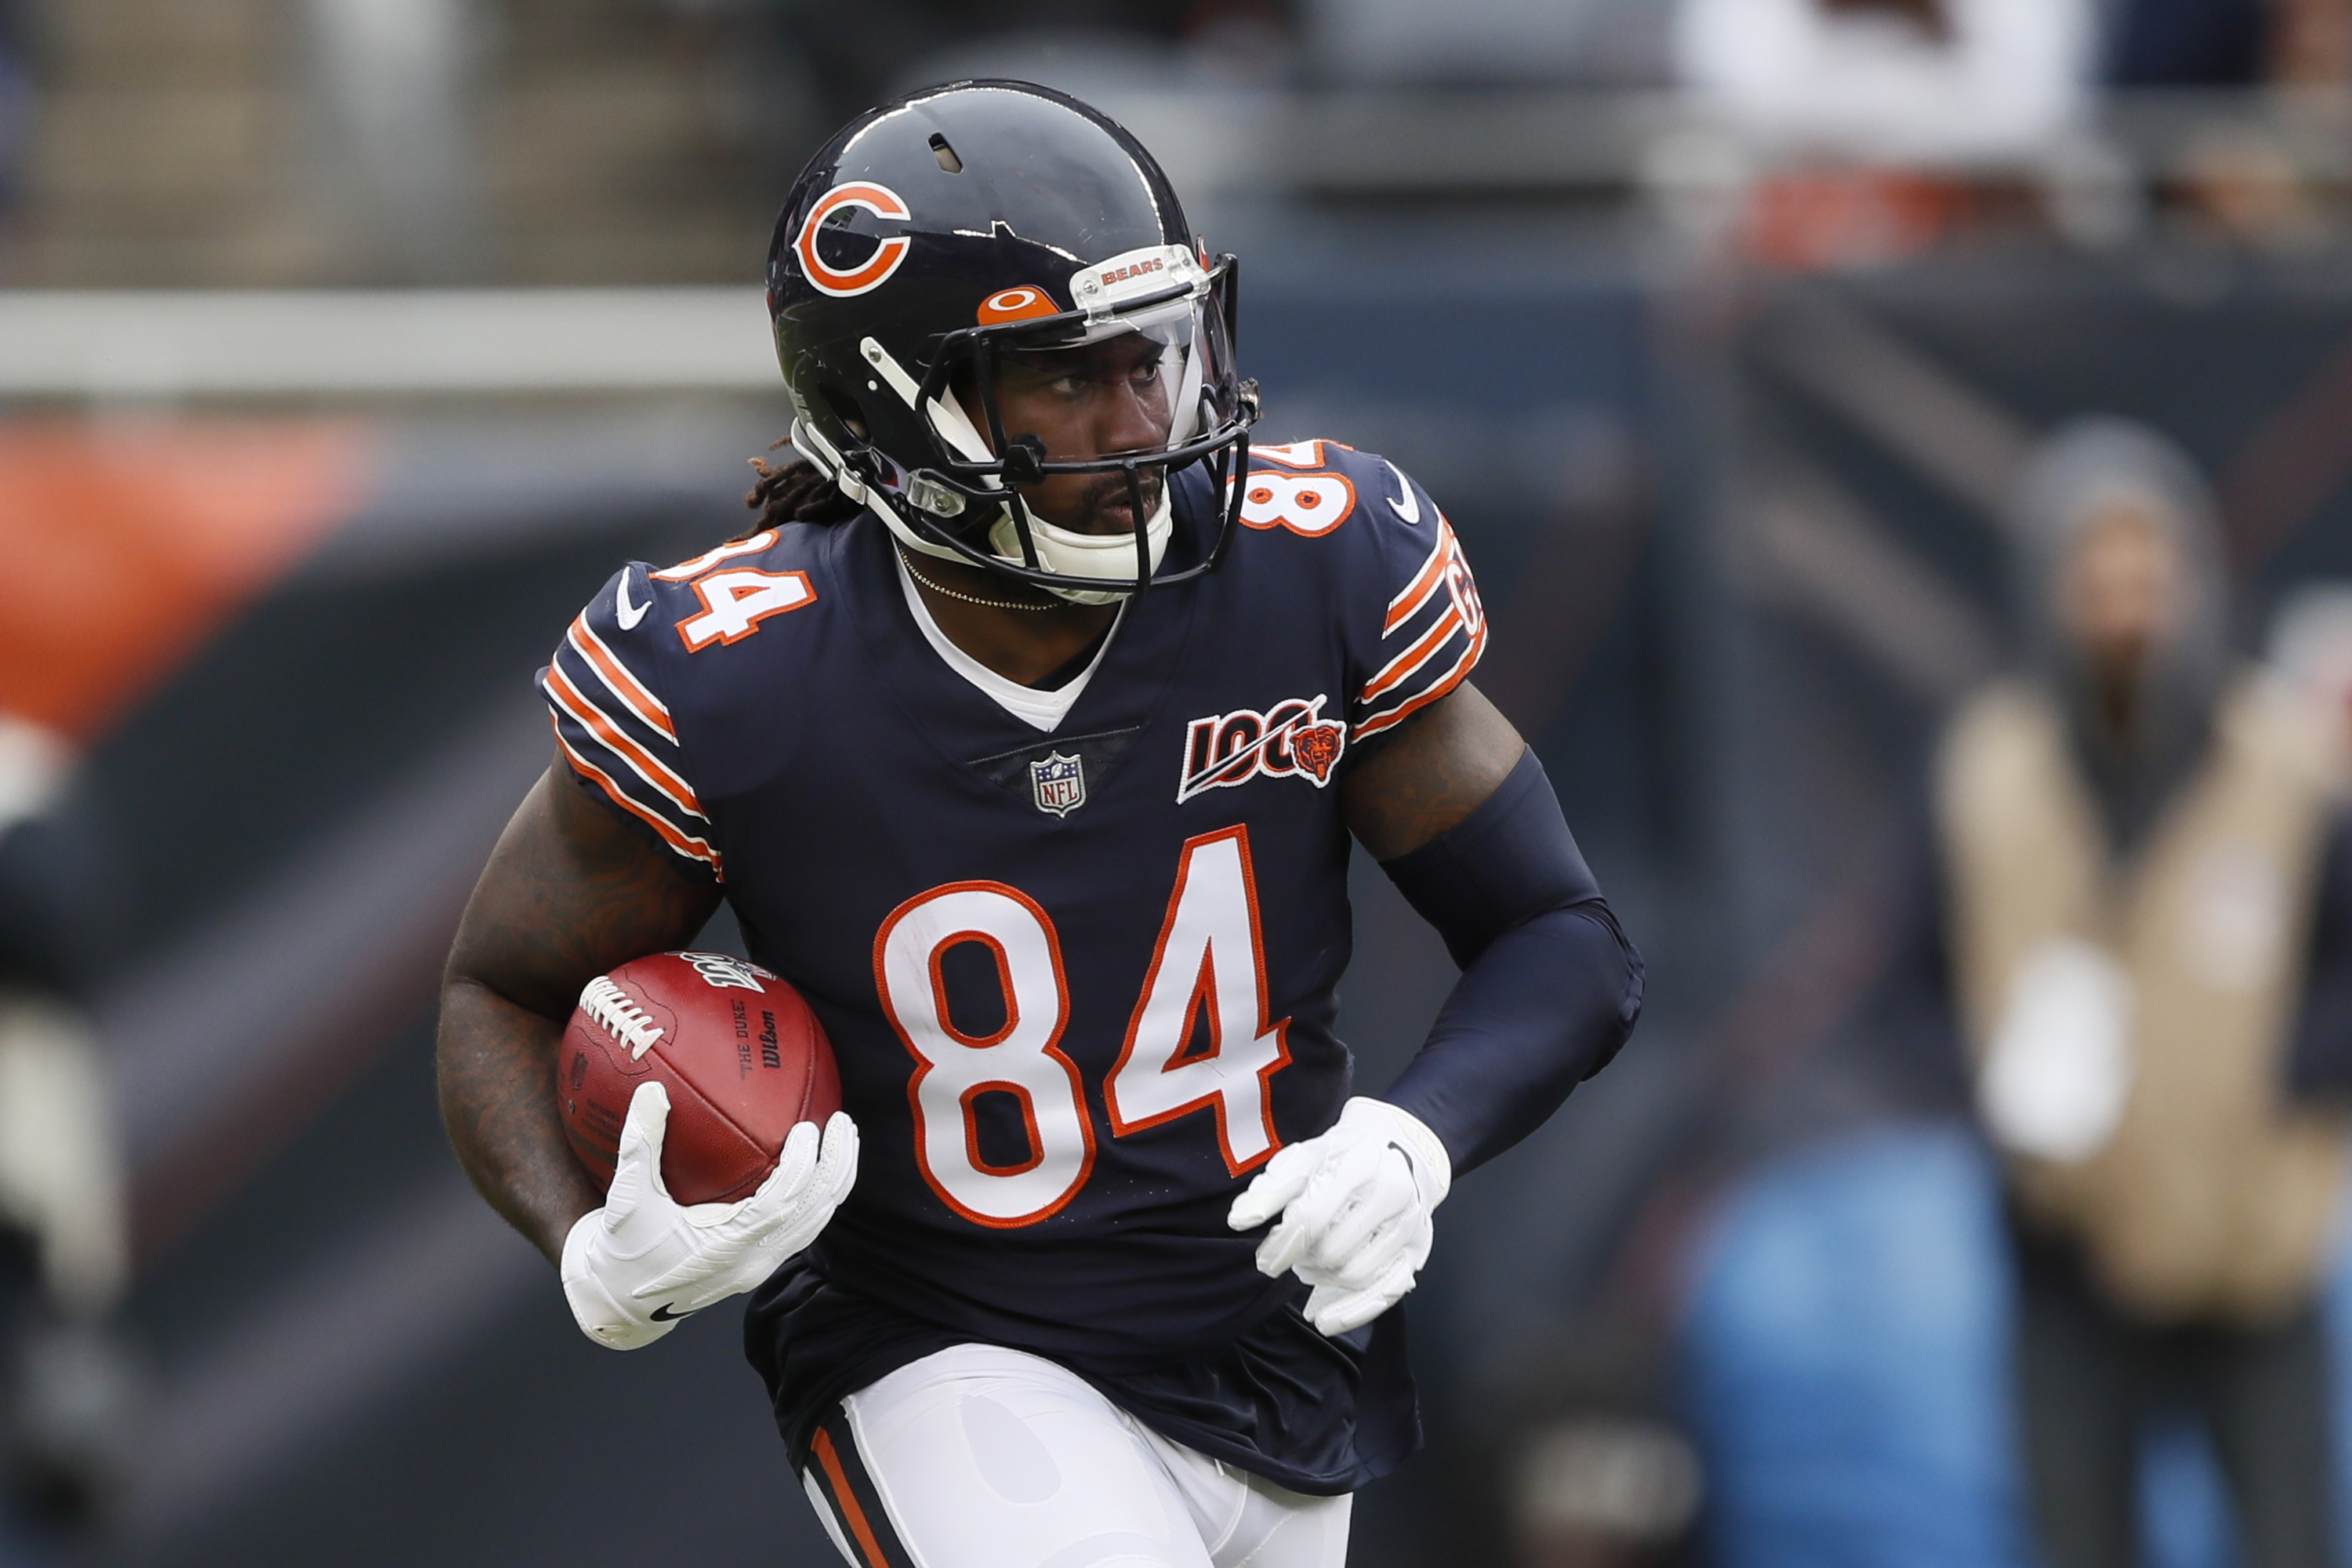 Cordarrelle Patterson as a Bears tight end? Why not?